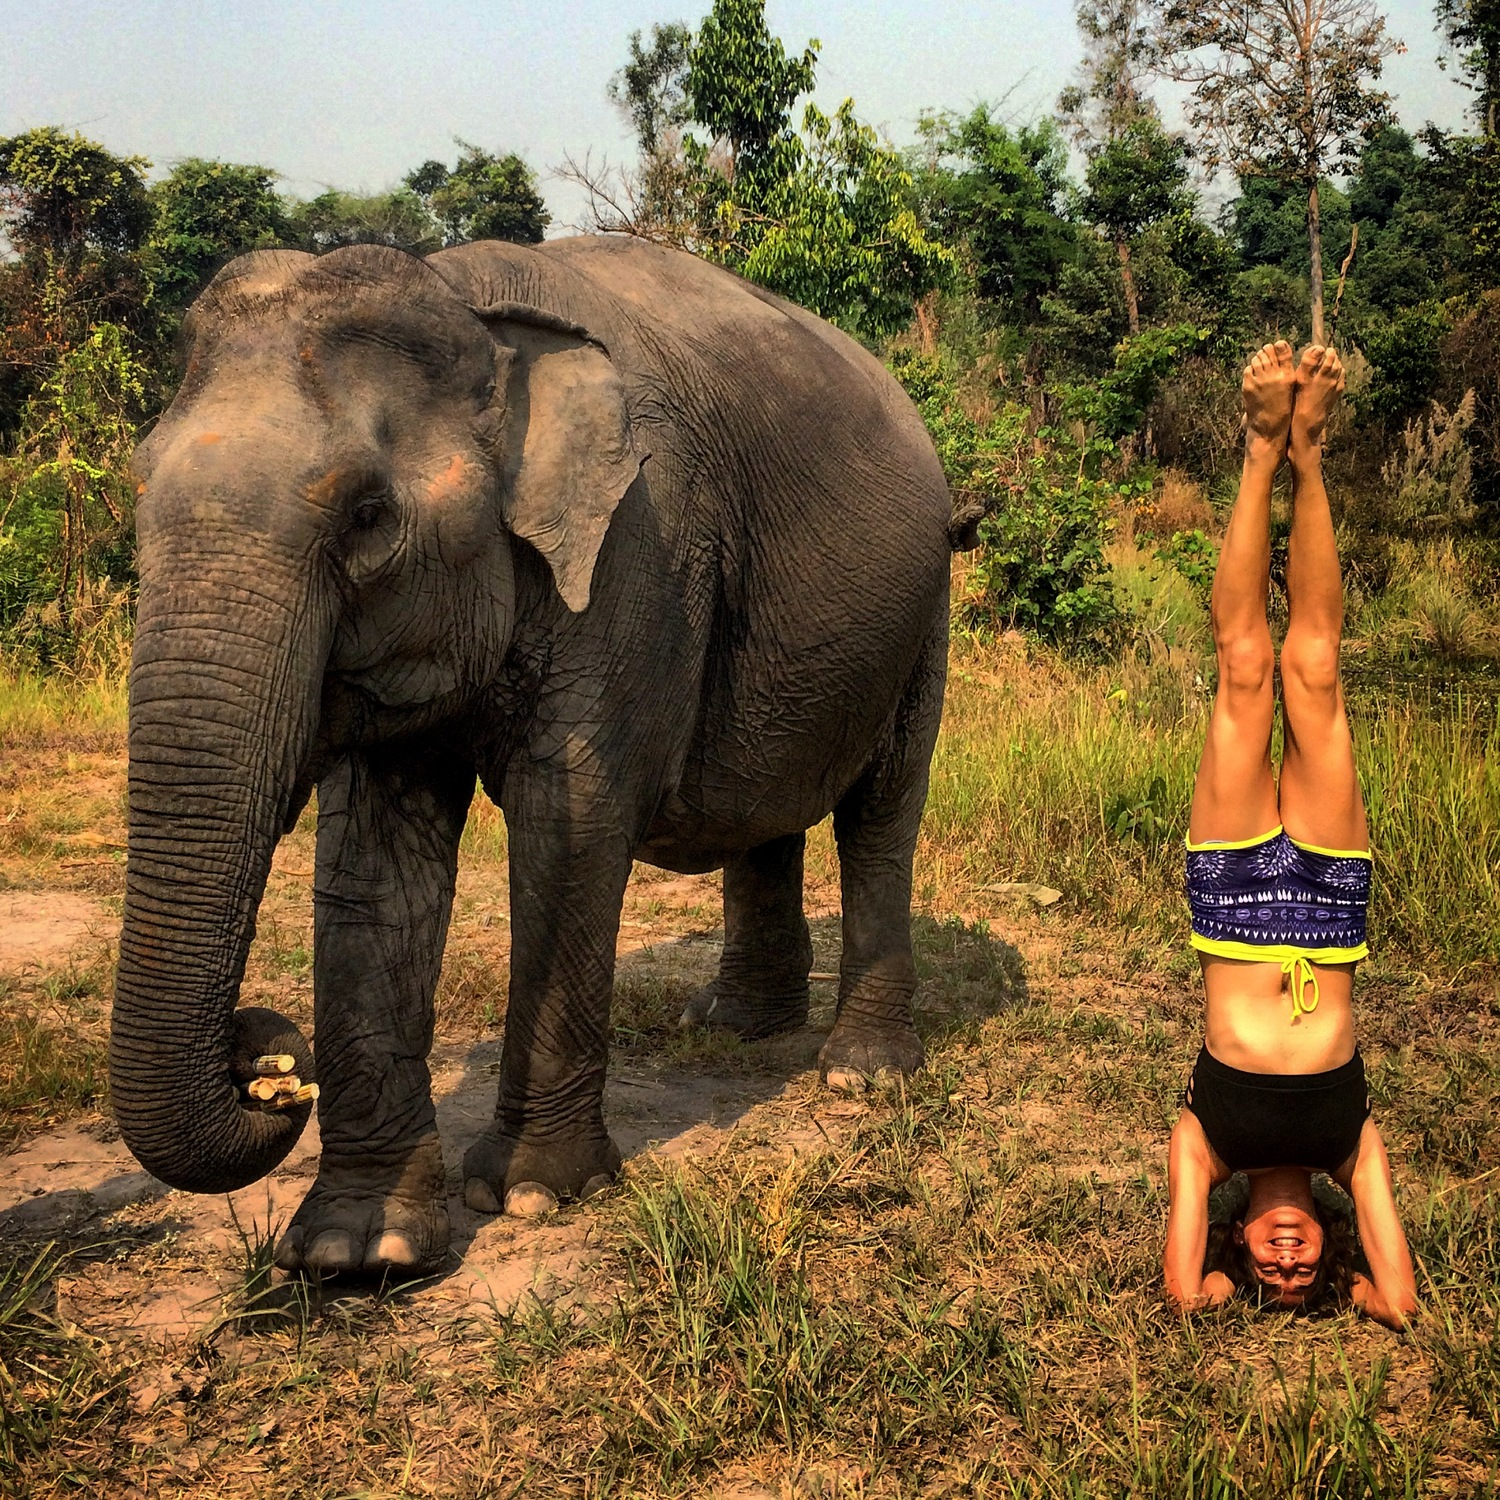 Travel Diary Days 36 - 40: Elephant Nature Park in Cambodia (Video)